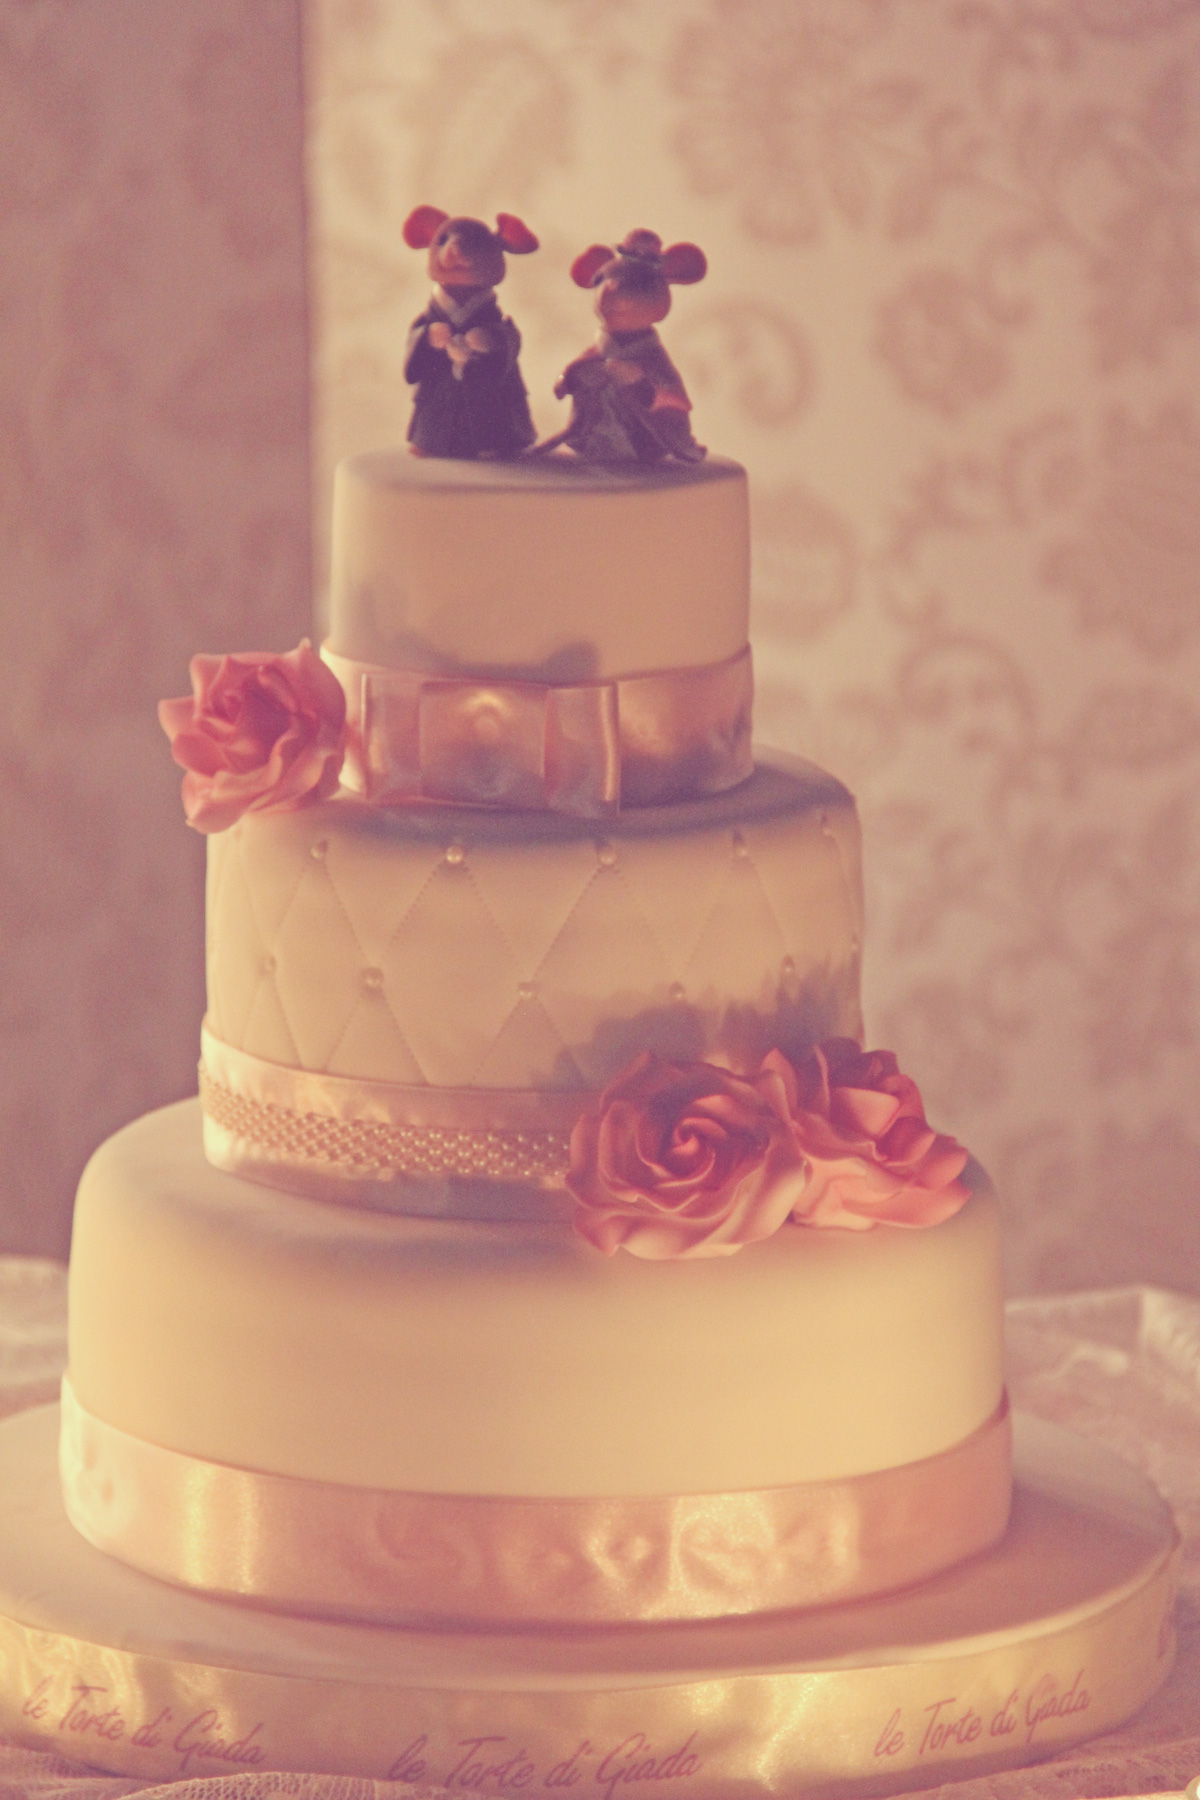 011-wedding-lake-garda-le-torte-di-giada-wedding-cake